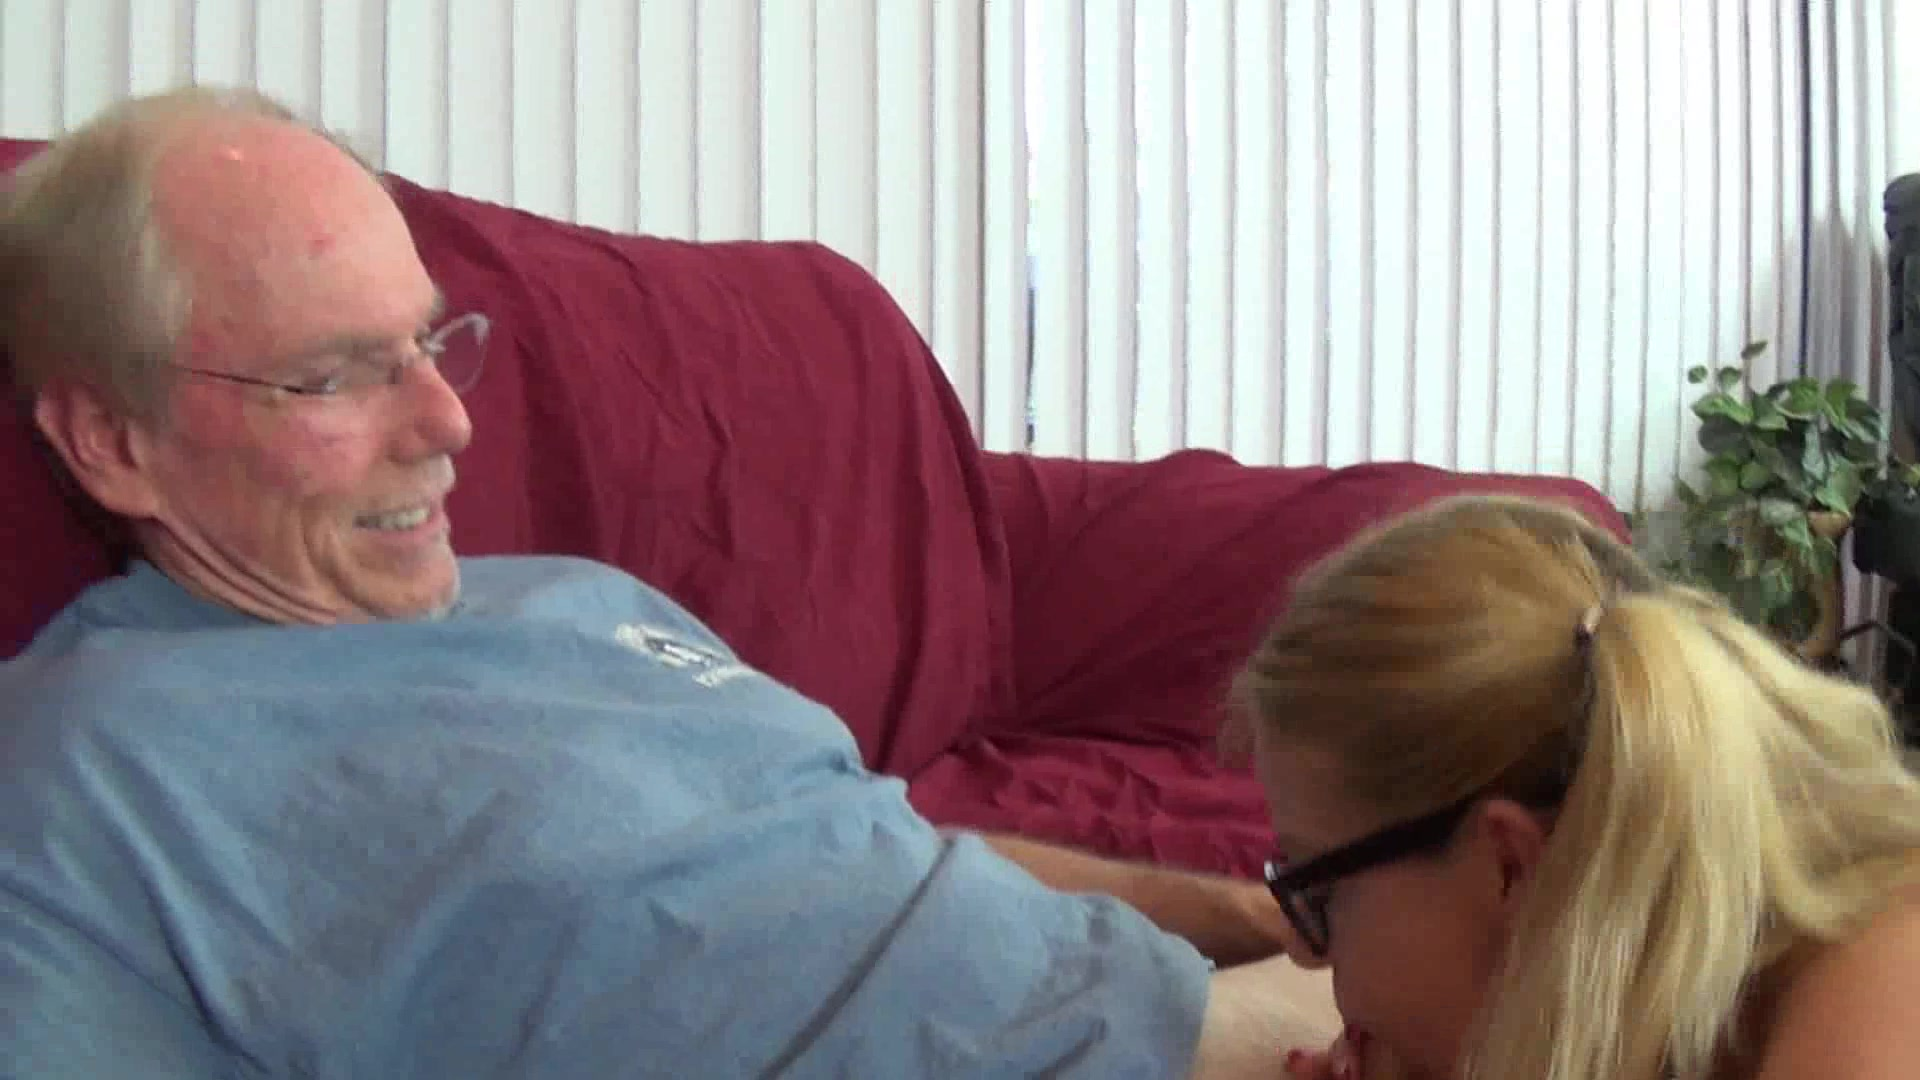 Hardcore adult family video — 9